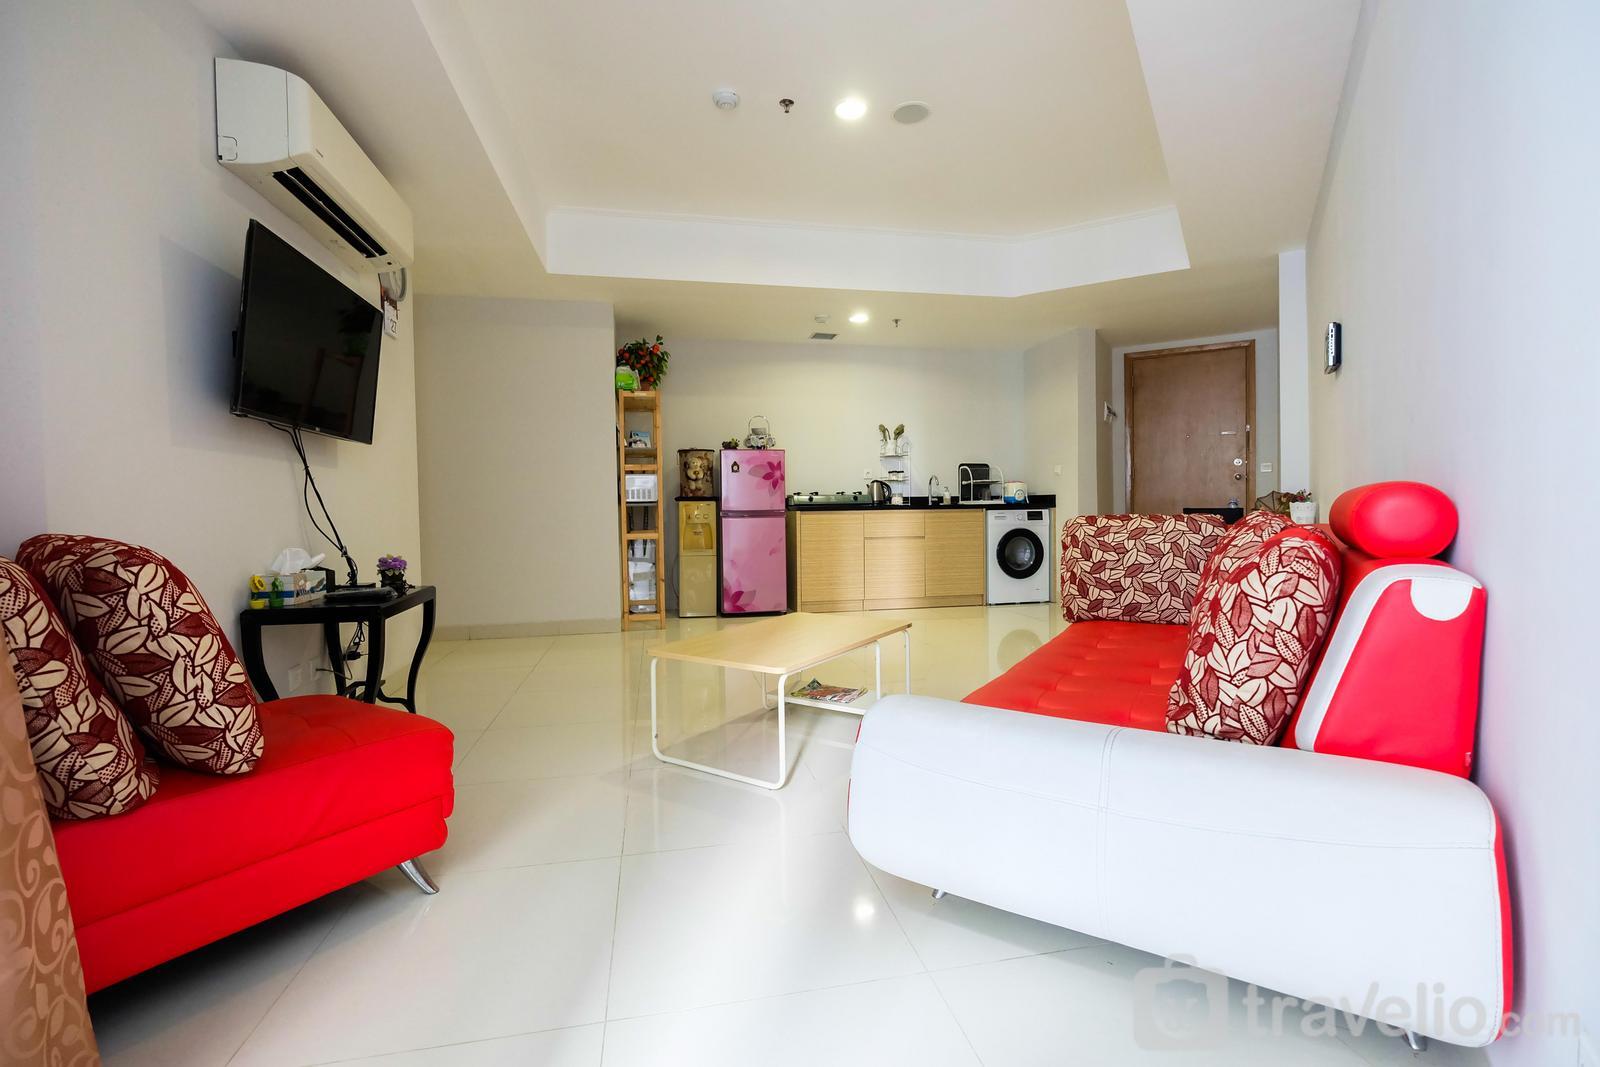 The Mansion Kemayoran - Spacious 2BR The Mansion Apartment near JIEXPO By Travelio